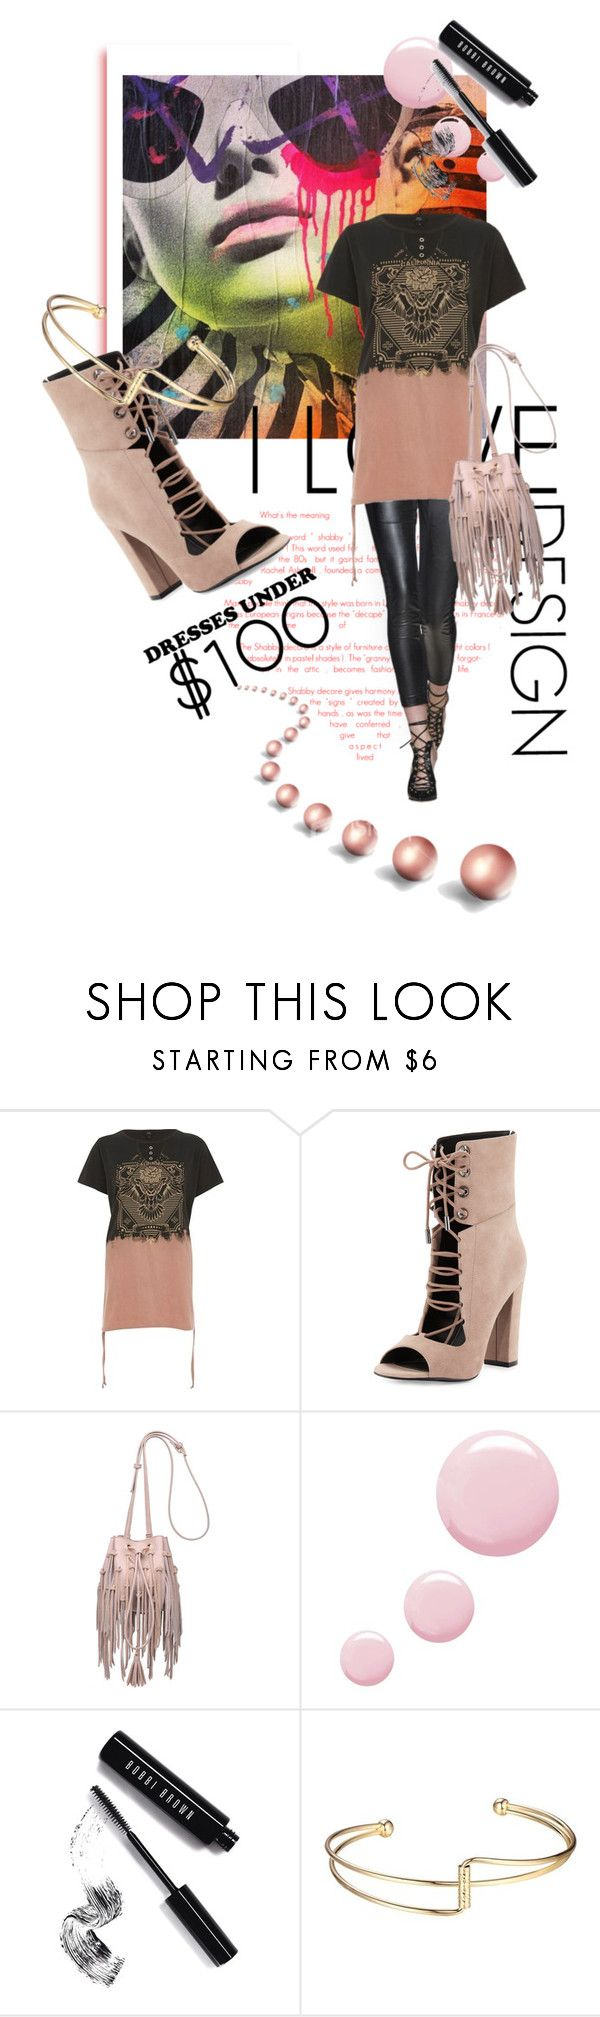 """Under $100: Summer Dresses"" by kari-c ❤ liked on Polyvore featuring River Island, Kendall + Kylie, Moda Luxe, Topshop, Bobbi Brown Cosmetics and under100"